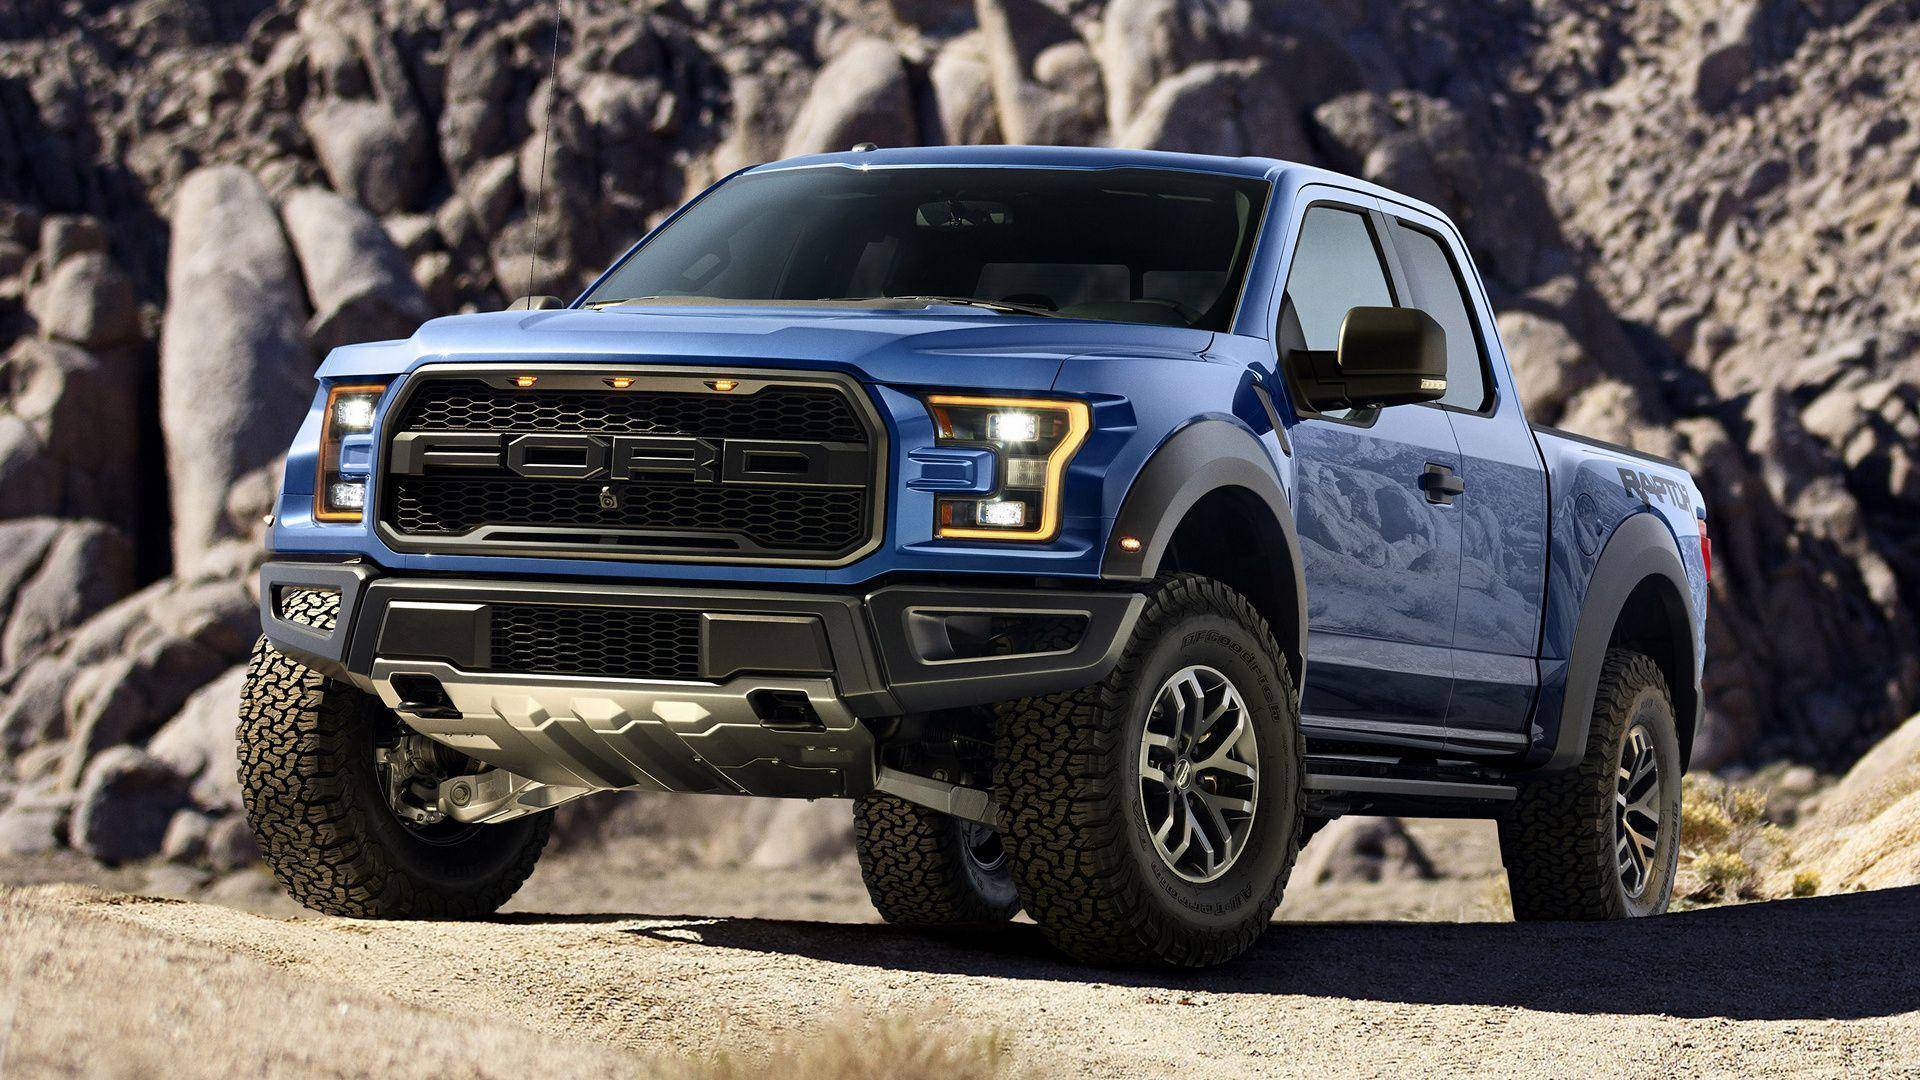 wallpaper ford raptor - photo #5